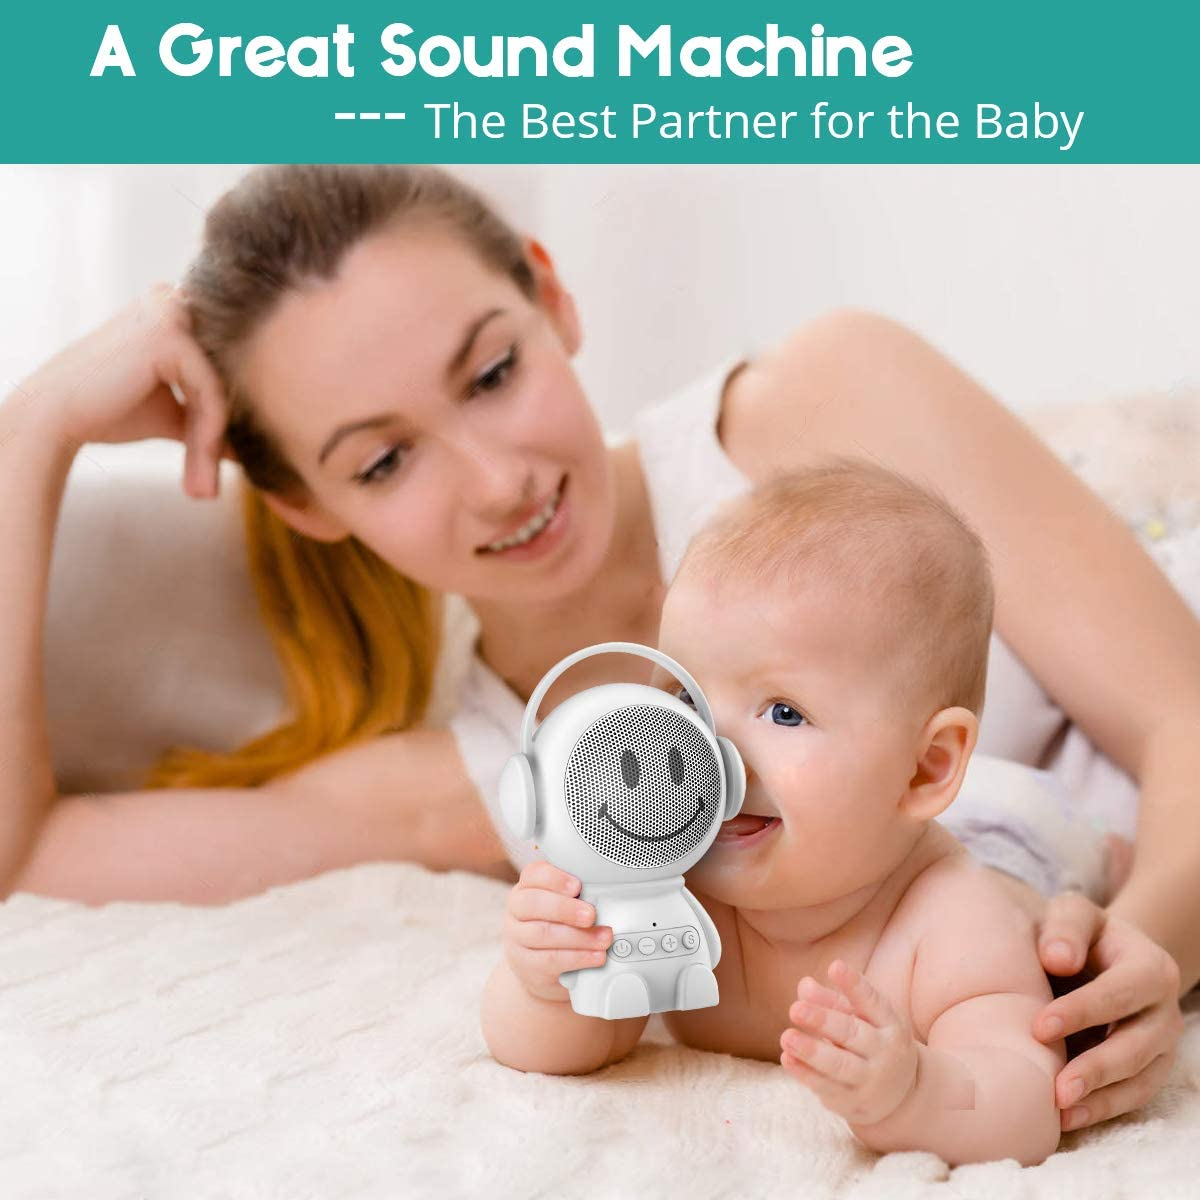 Sleepbox Portable Hushh Sound Machine for Baby Adults Rechargeable White Noise Machine with 30 Non Looping Soothing Sounds and Memory Function 32 levels of volume and Sleep Timer Sound Therapy.(White)